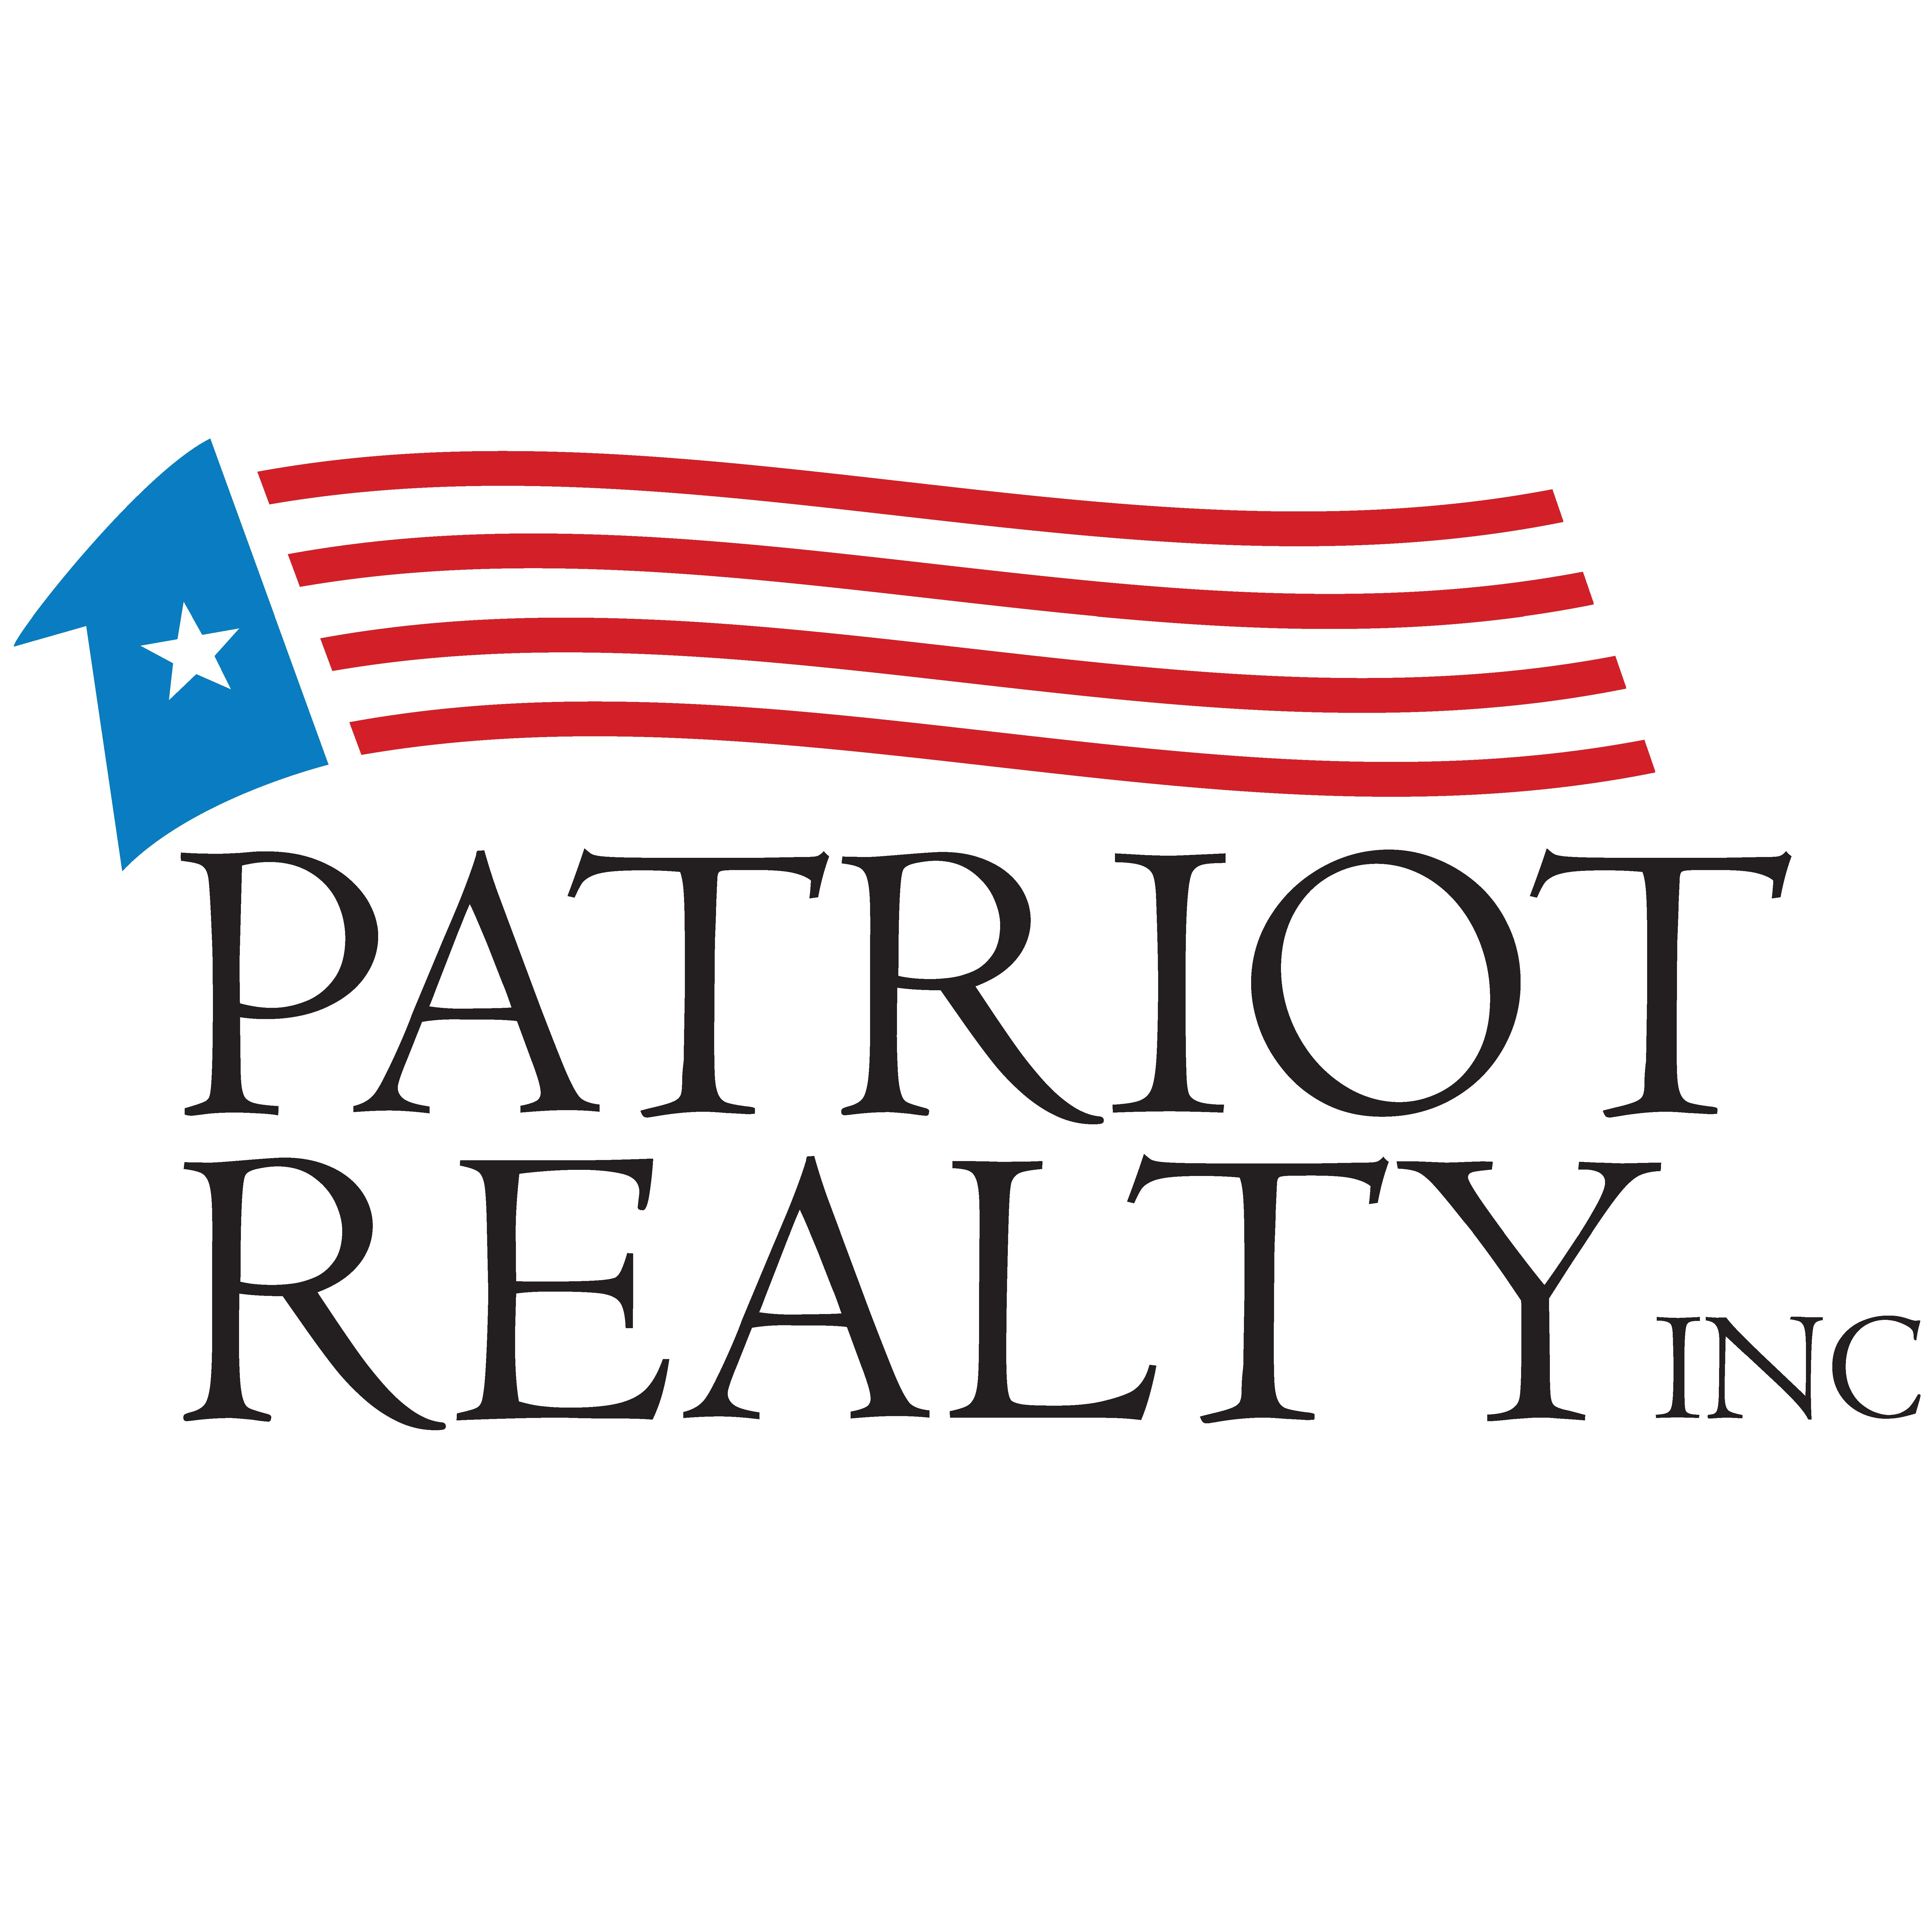 Patriot Realty Inc